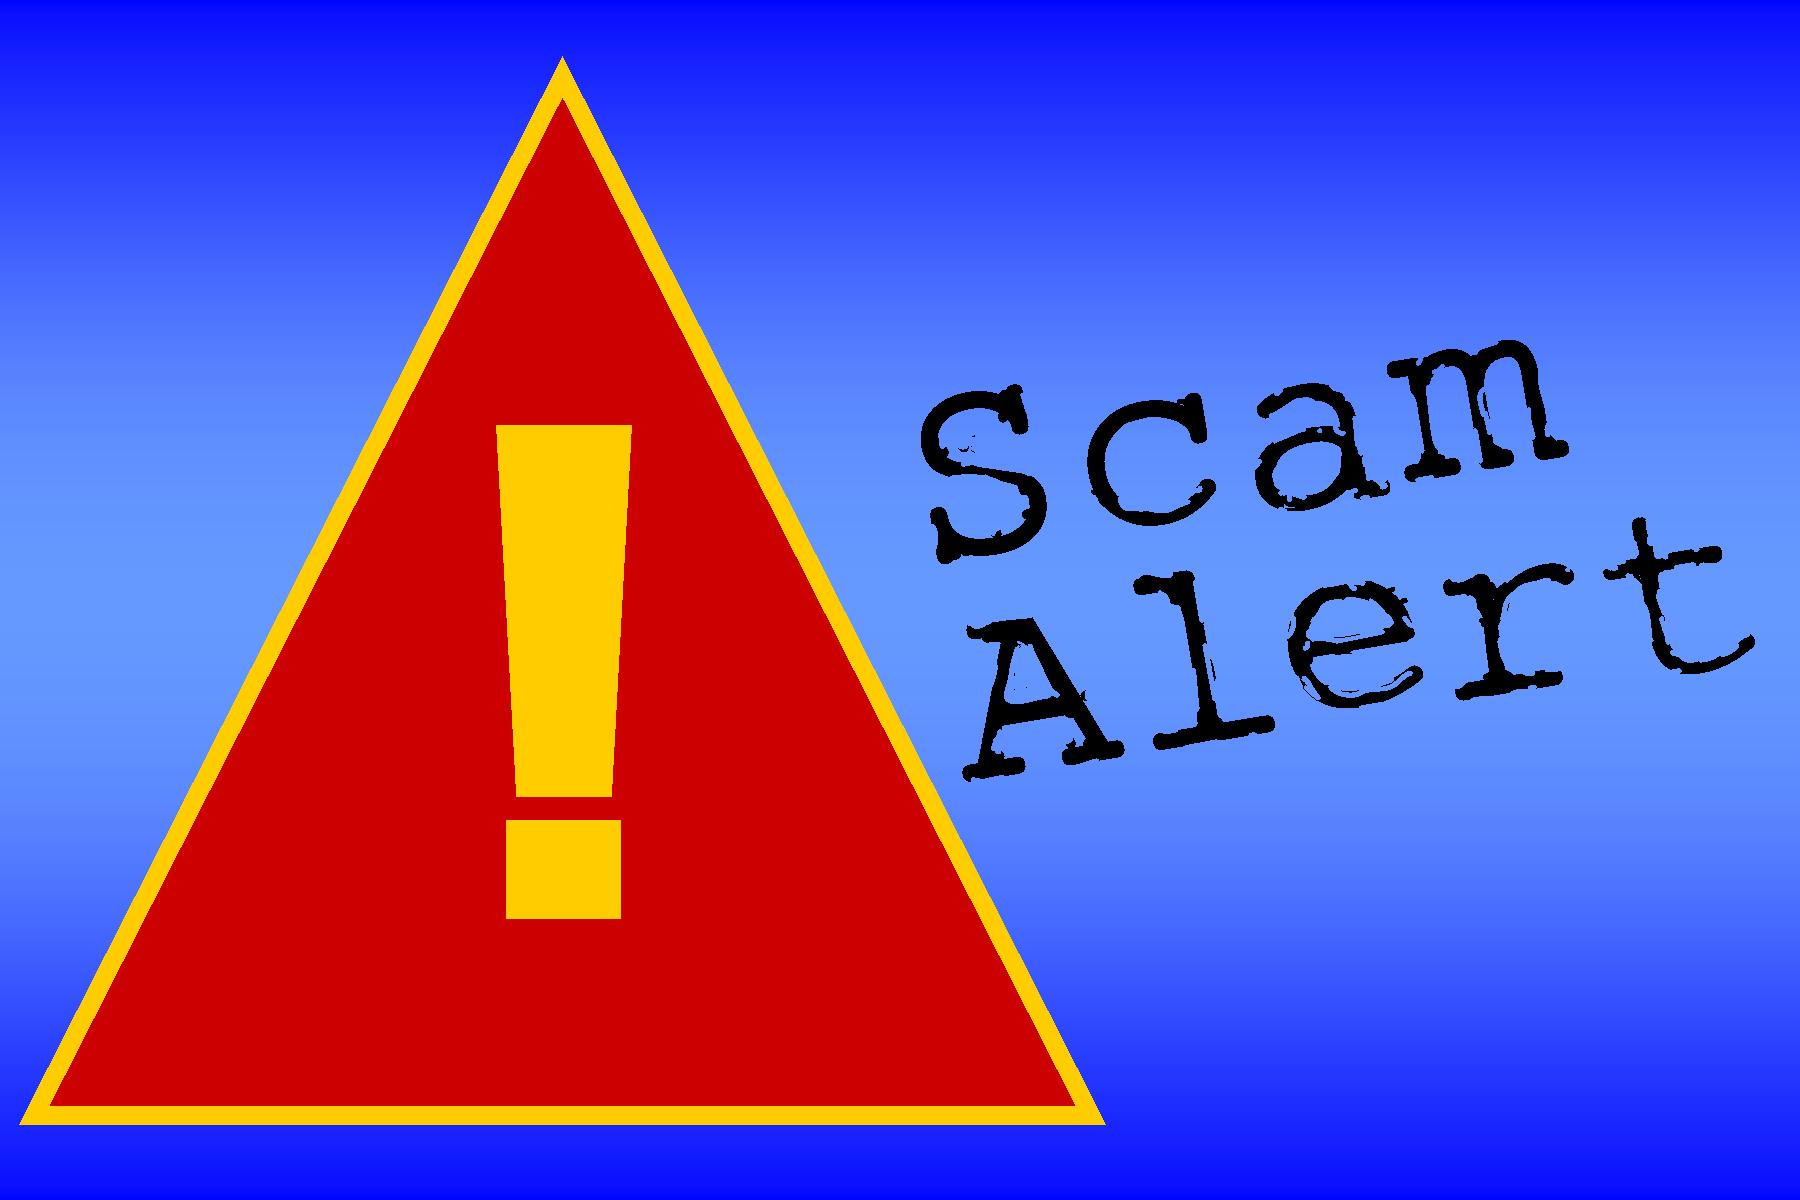 POOFness for OCT 27: ADDENDUM (because I am not getting nearly enough donations) Scam-alert